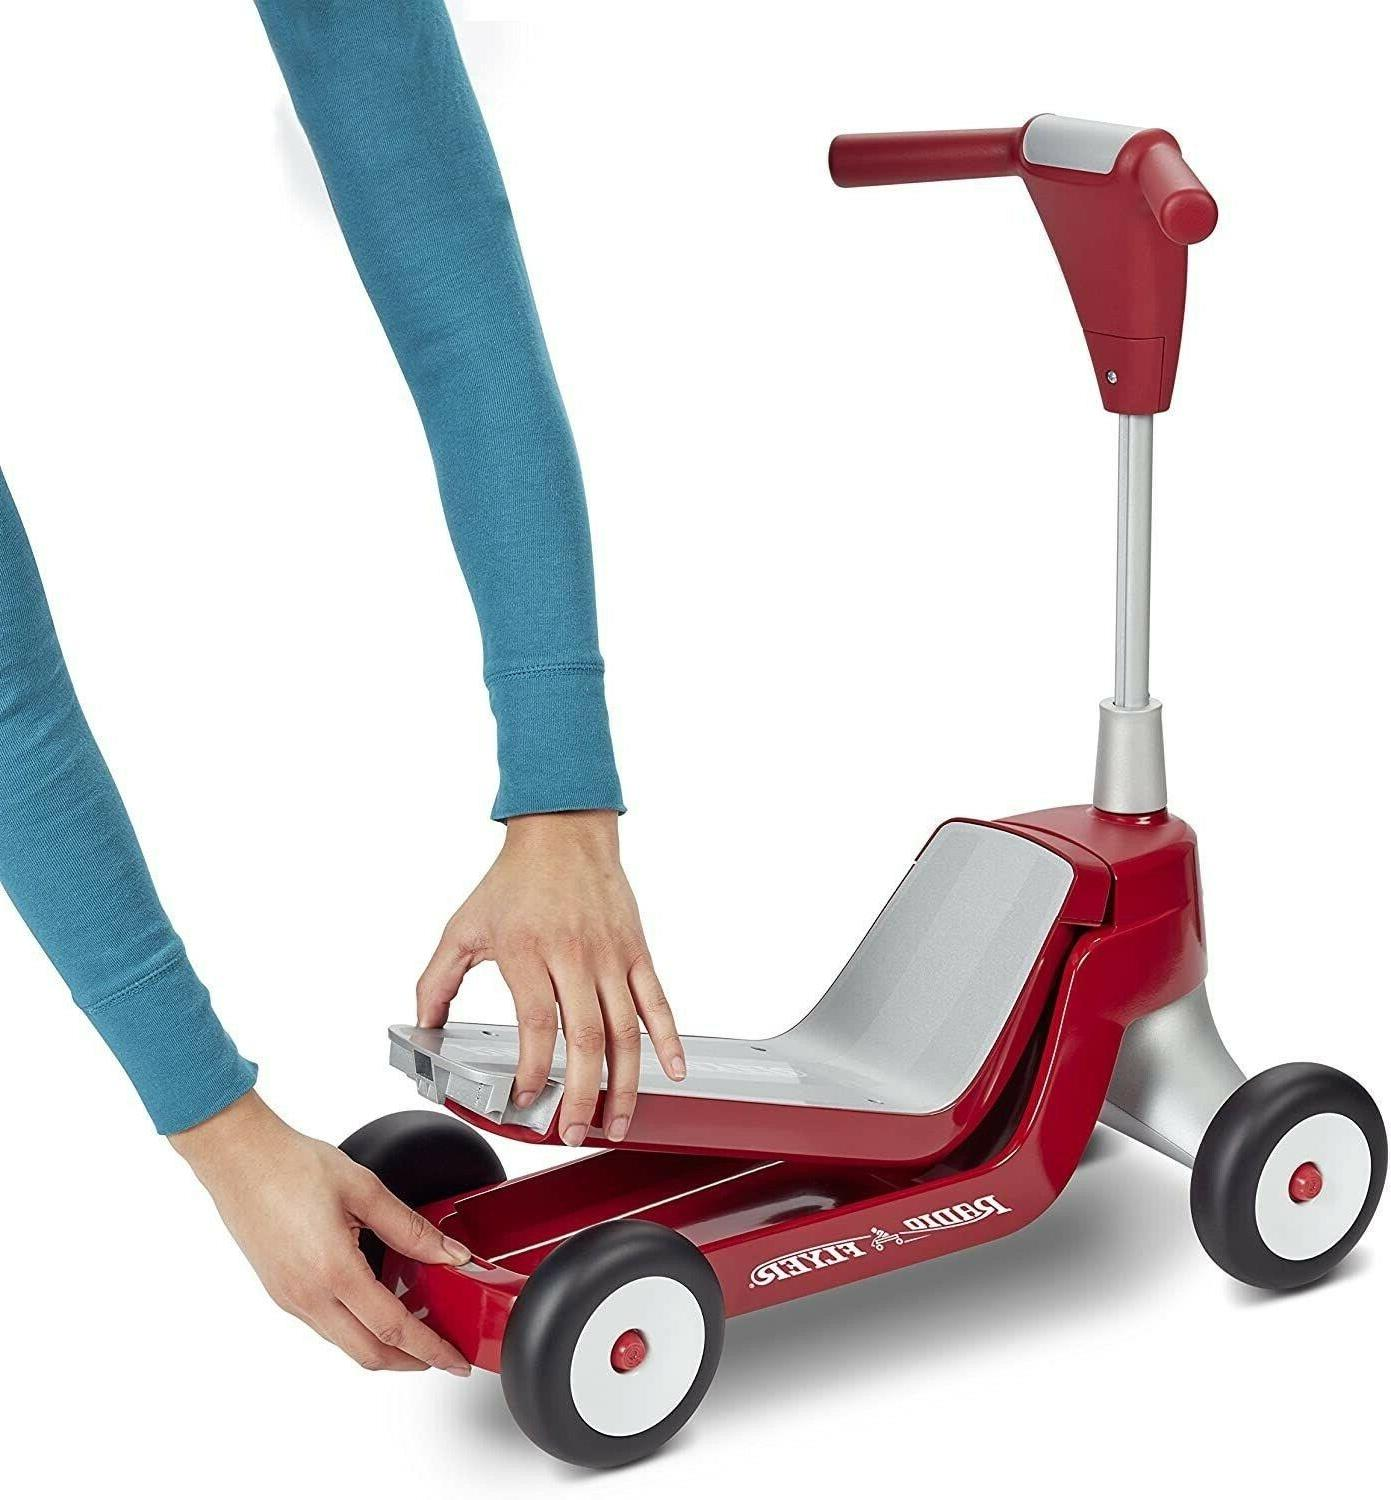 Radio Scooter, Toddler Scooter Ride Model: